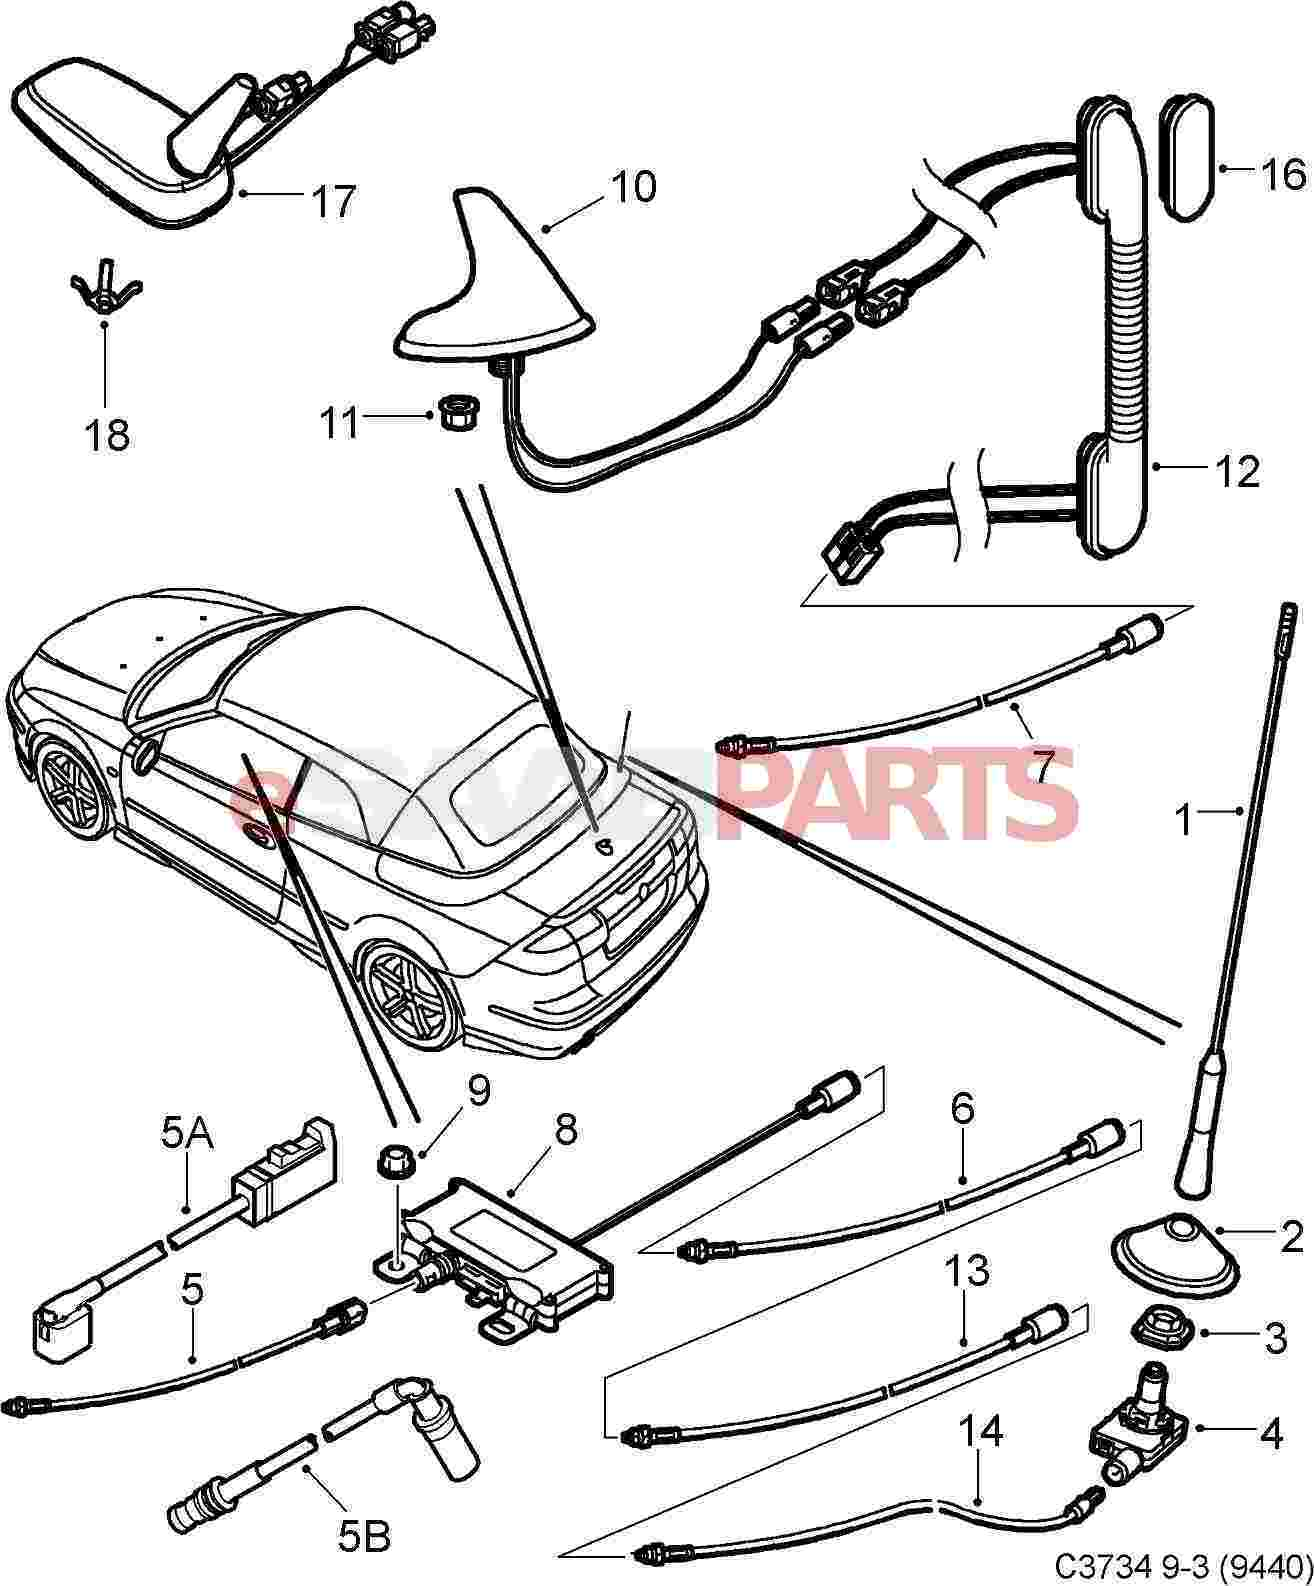 99 Saab 9 3 Parts Diagram • Wiring Diagram For Free